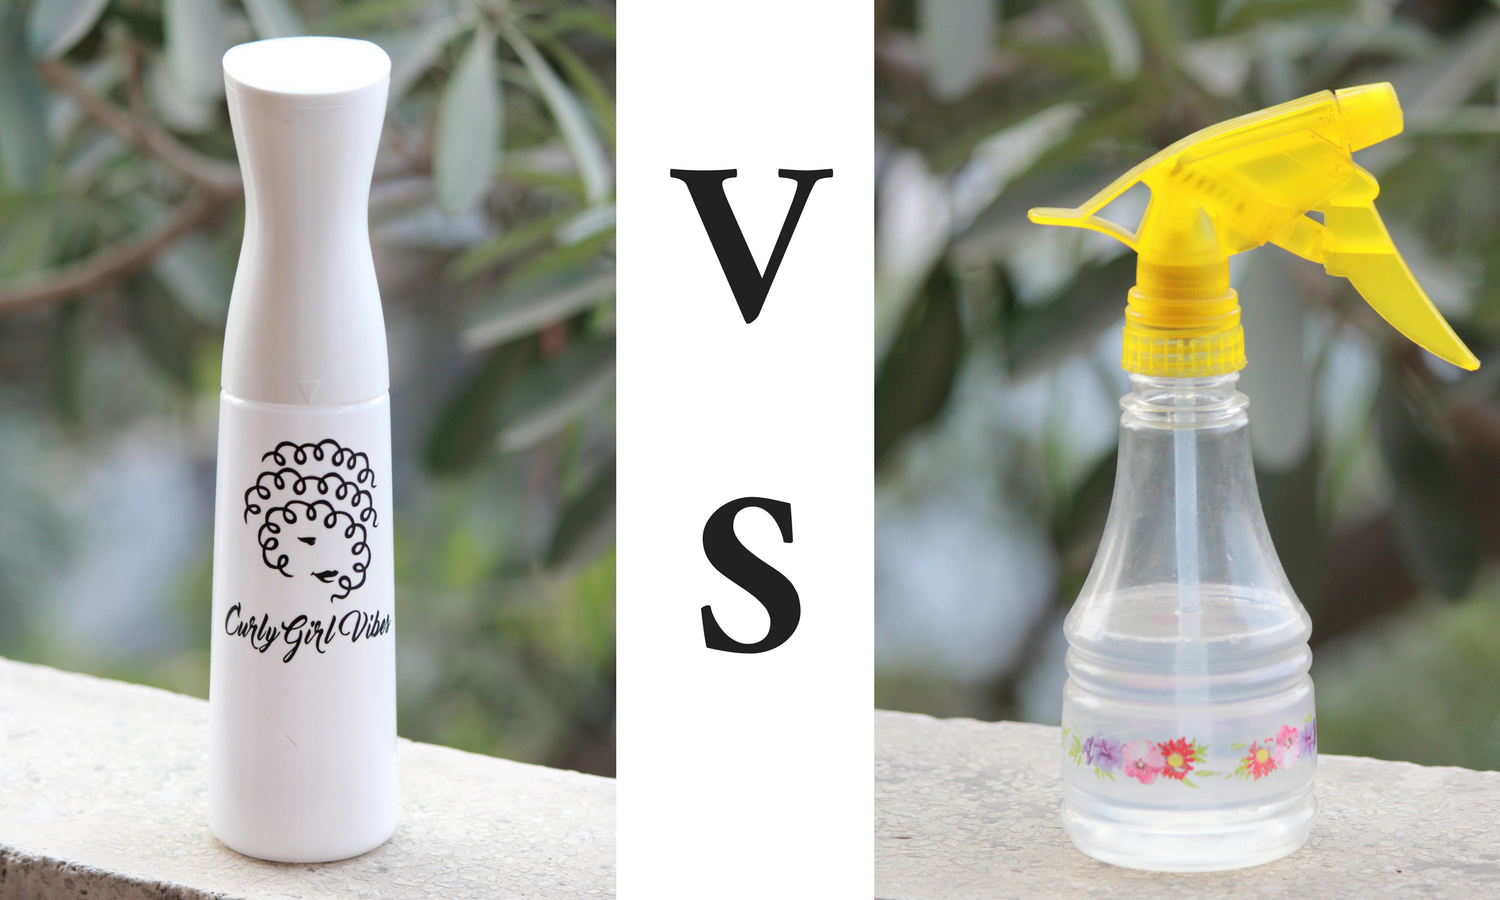 Flairosol Versus Spray Bottle